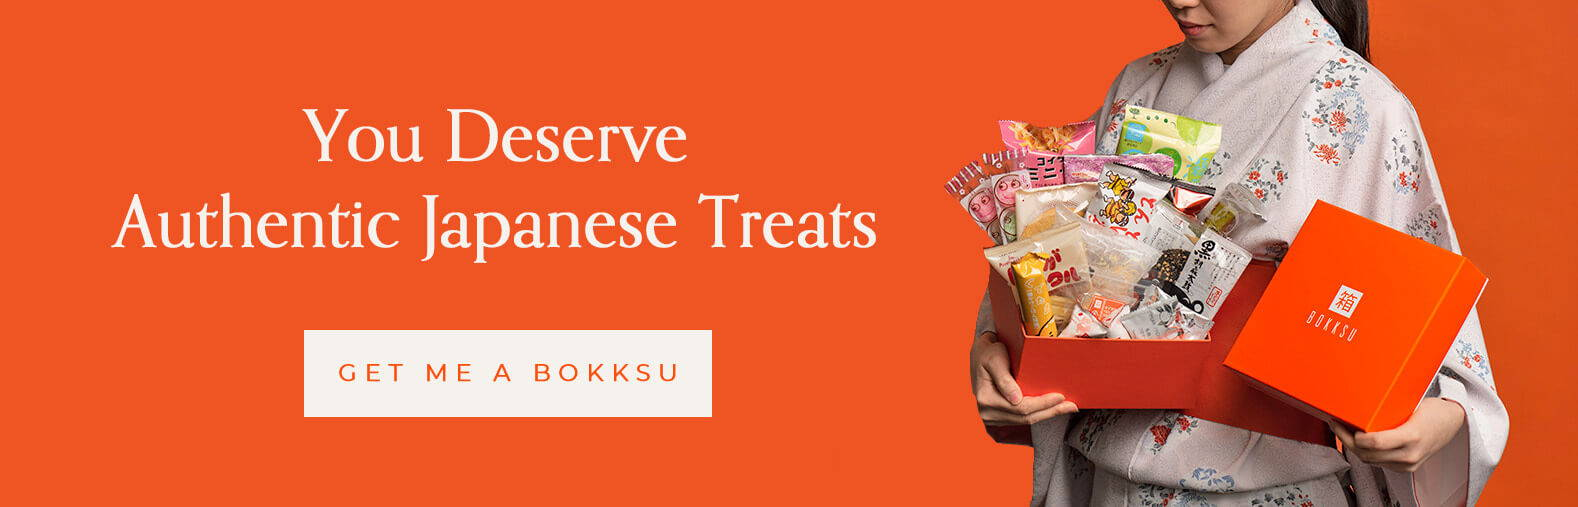 join bokksu japanese snack subscription box today